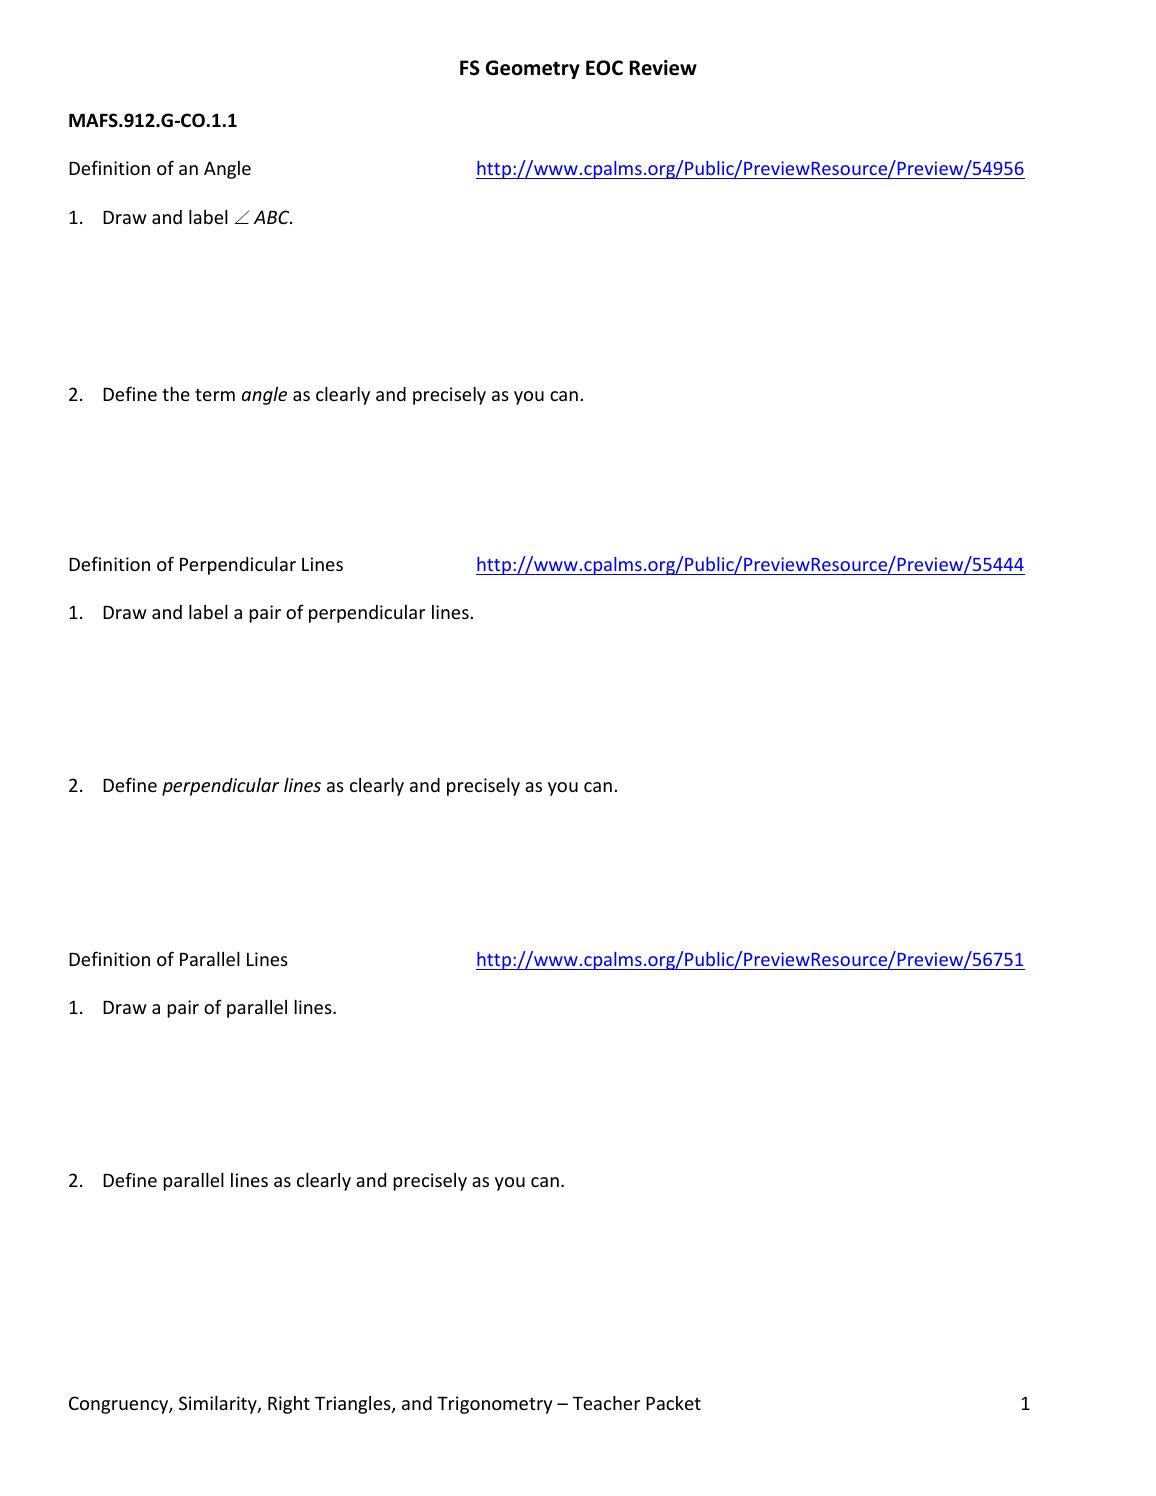 Eoc review answer sheet 3 by Aaron Galit - issuu